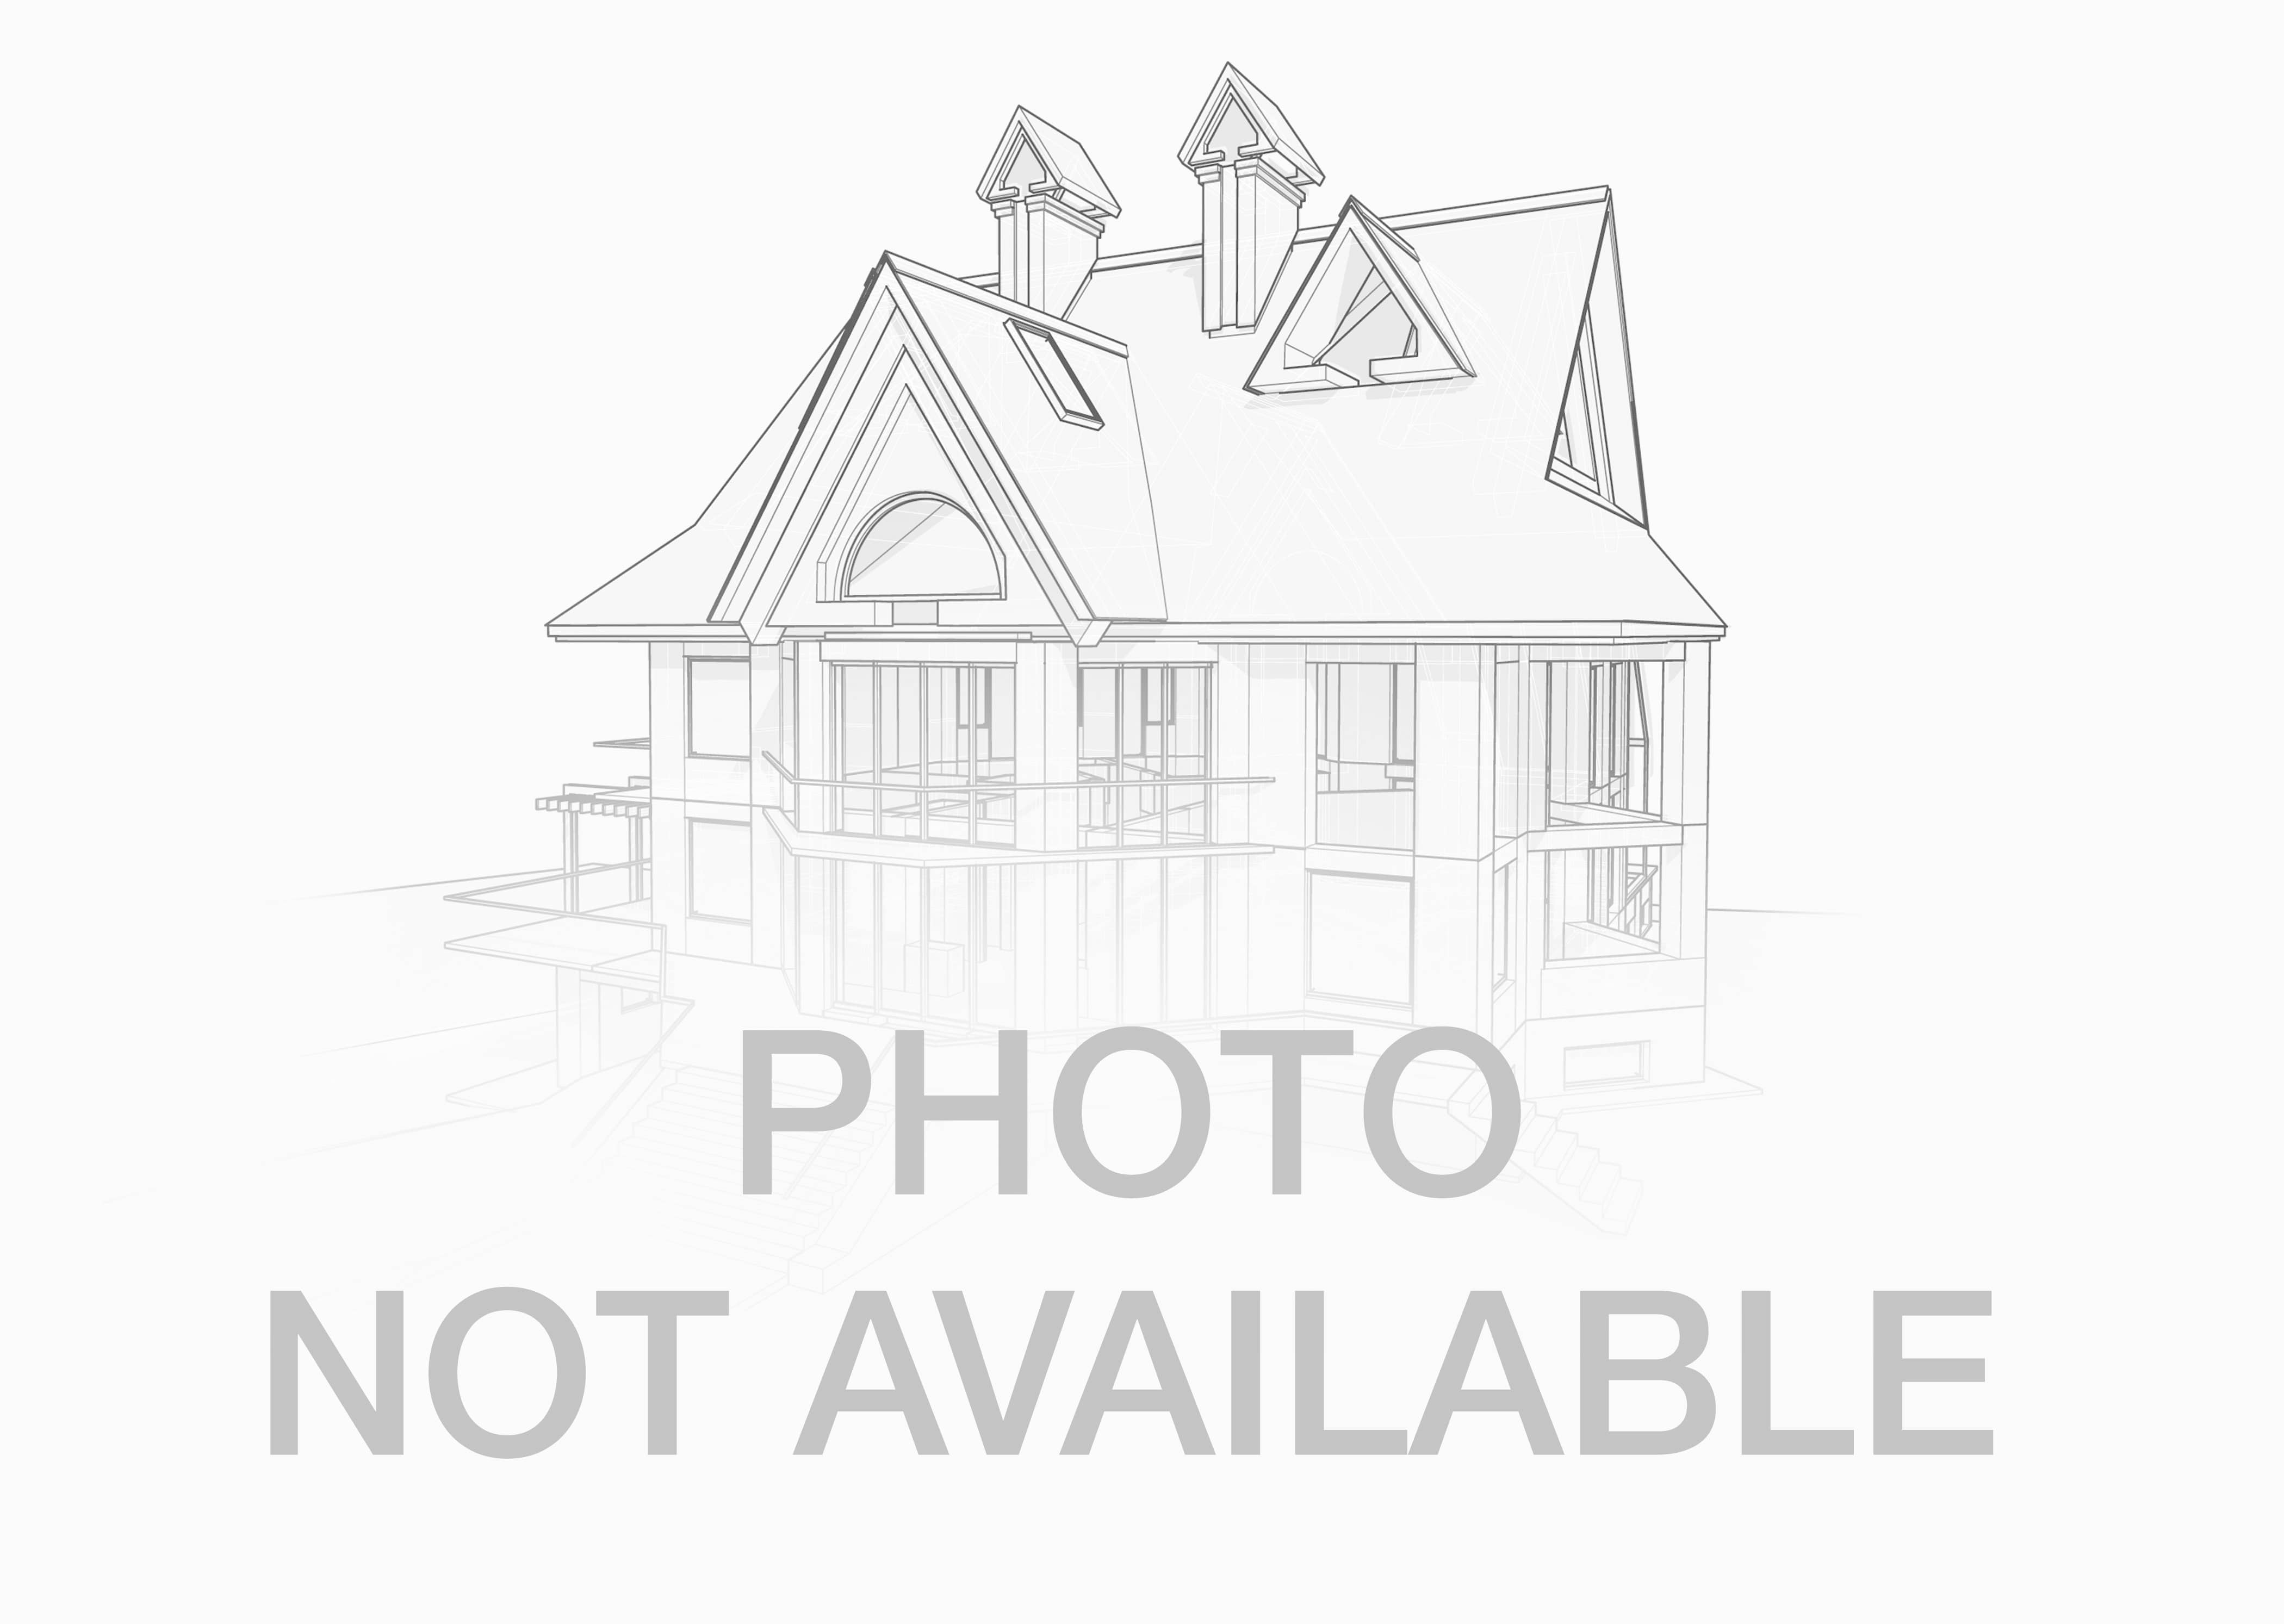 browse ohio all real estate for sale in zip code 45458 rh irongaterealtors com Rent to Own Homes homes for sale near 45458